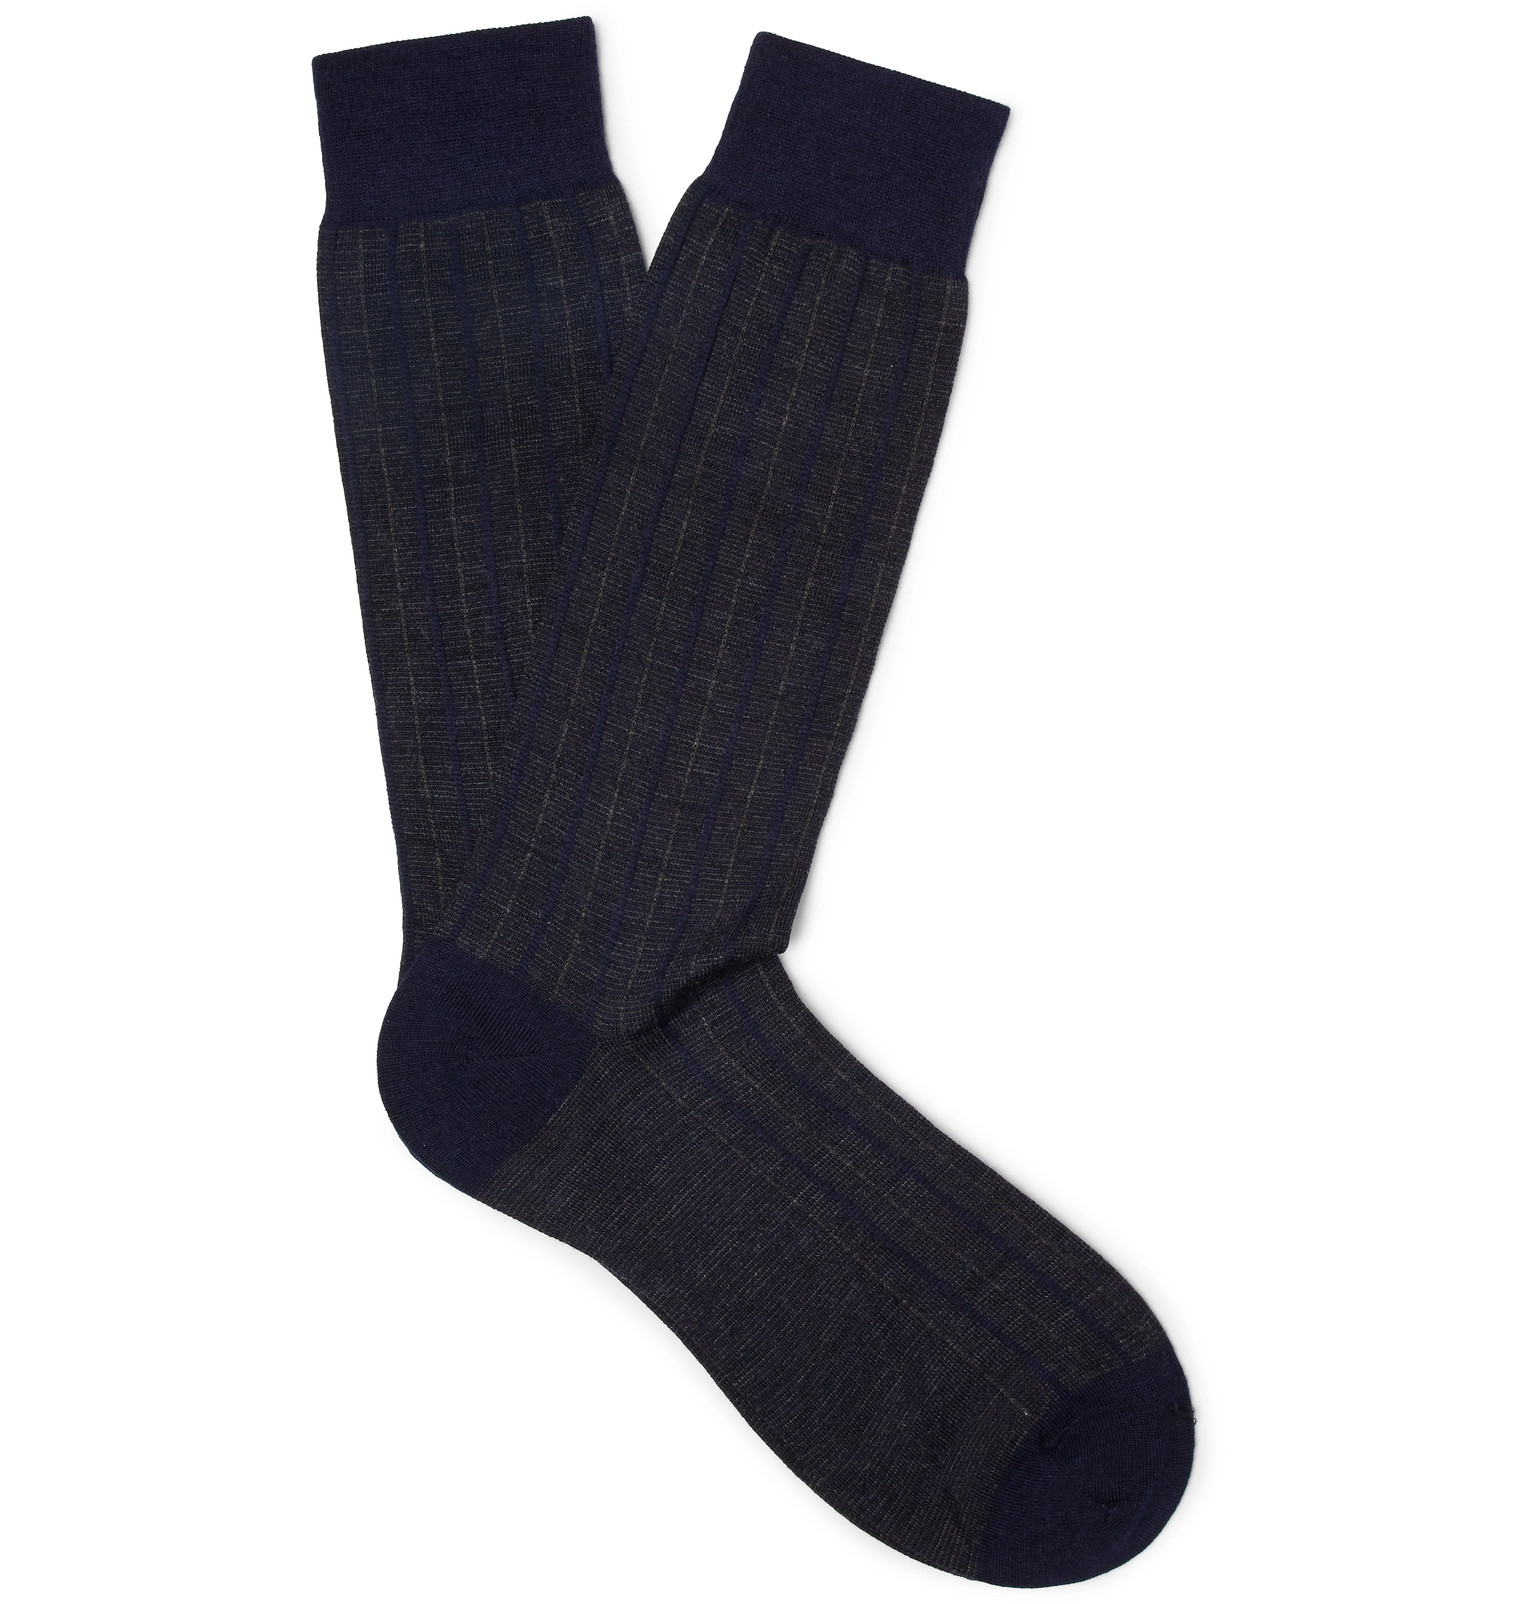 Fitzroy Striped Wool-blend Socks Pantherella Quality Free Shipping For Sale Cheap Best Wholesale Factory Outlet Cheap Online 4hozrZ